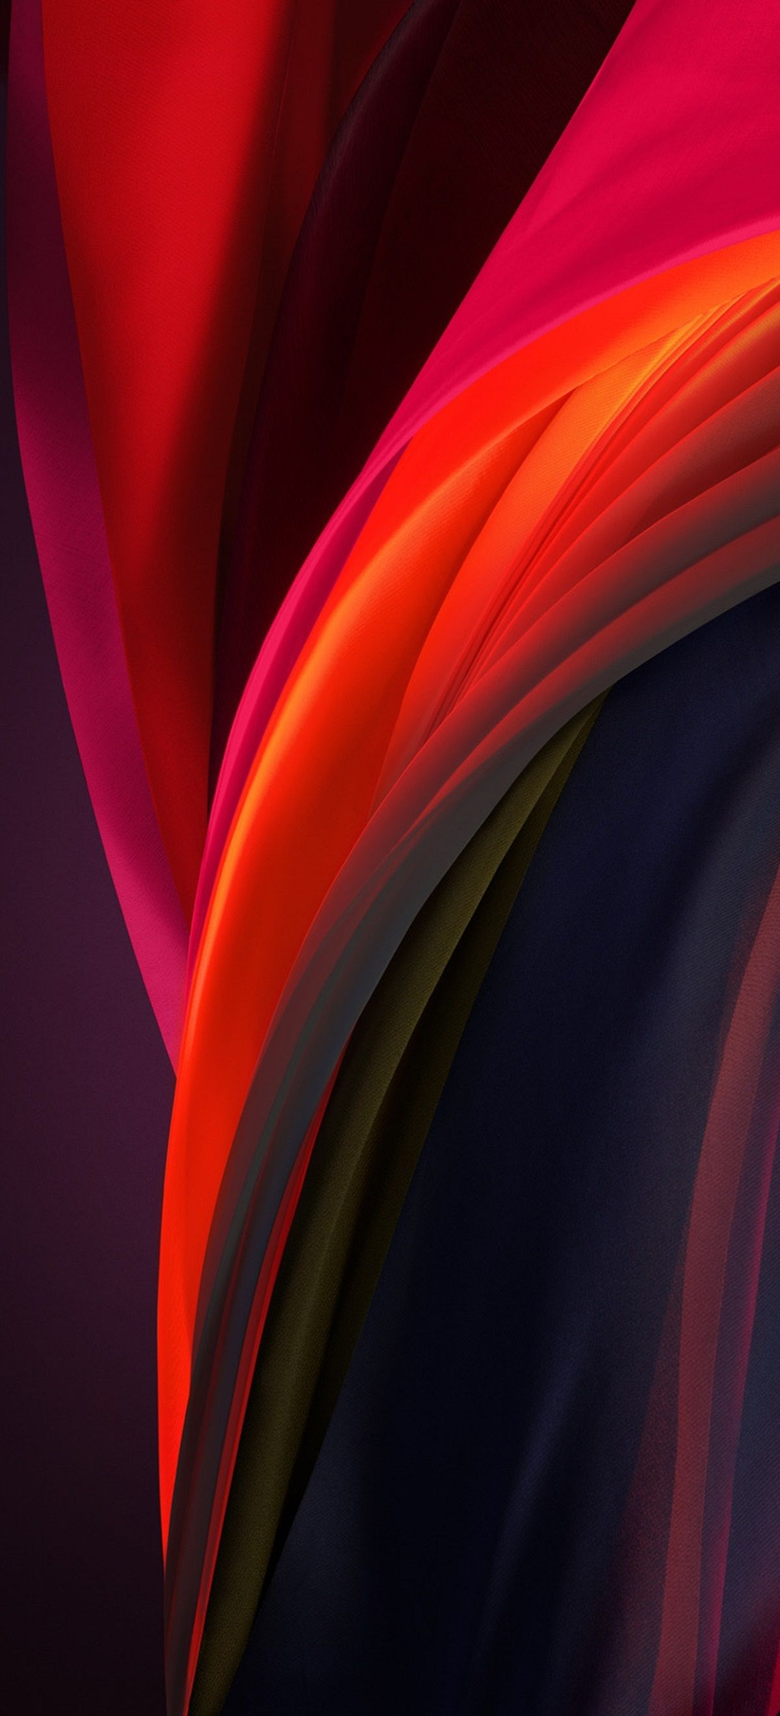 iPhone 12 SE 2020 Wallpapers 2 1200x2640 2190000094